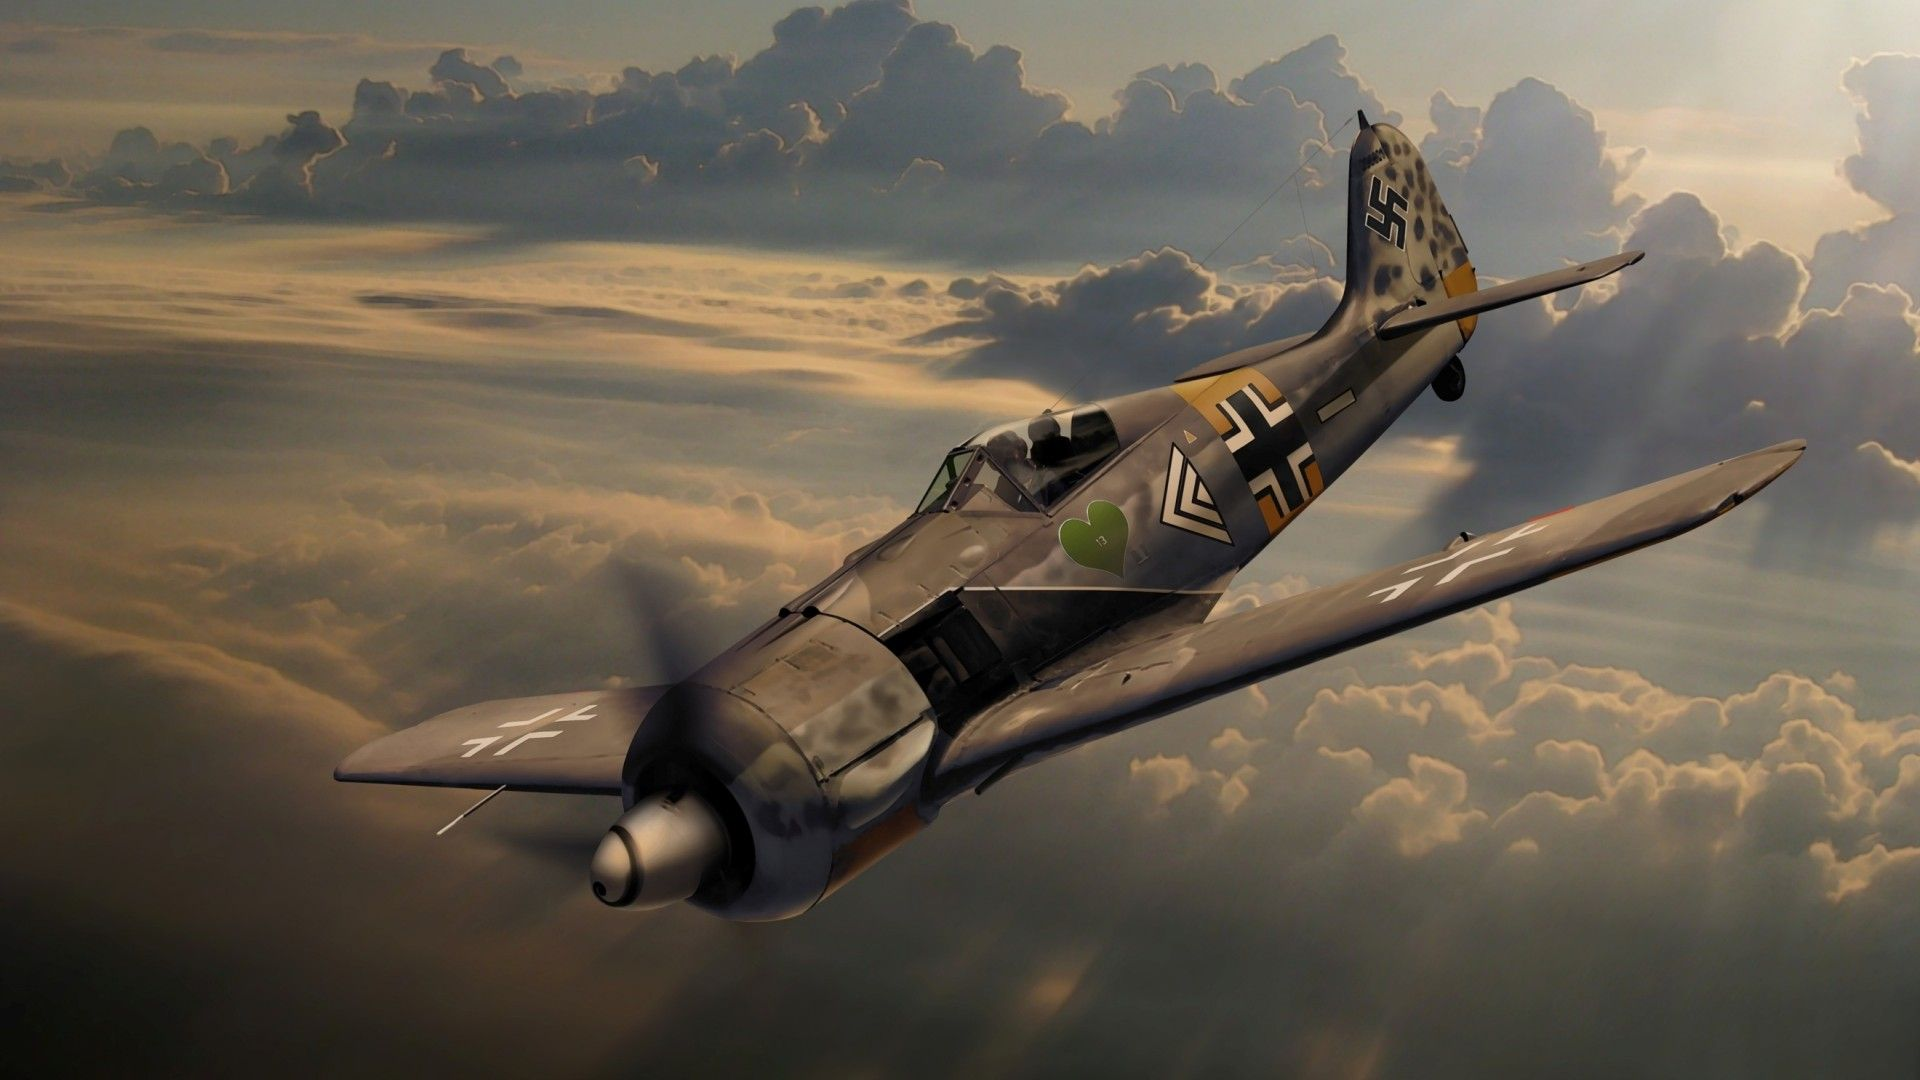 Vintage Ww2 Aircraft Wallpapers Top Free Vintage Ww2 Aircraft Backgrounds Wallpaperaccess